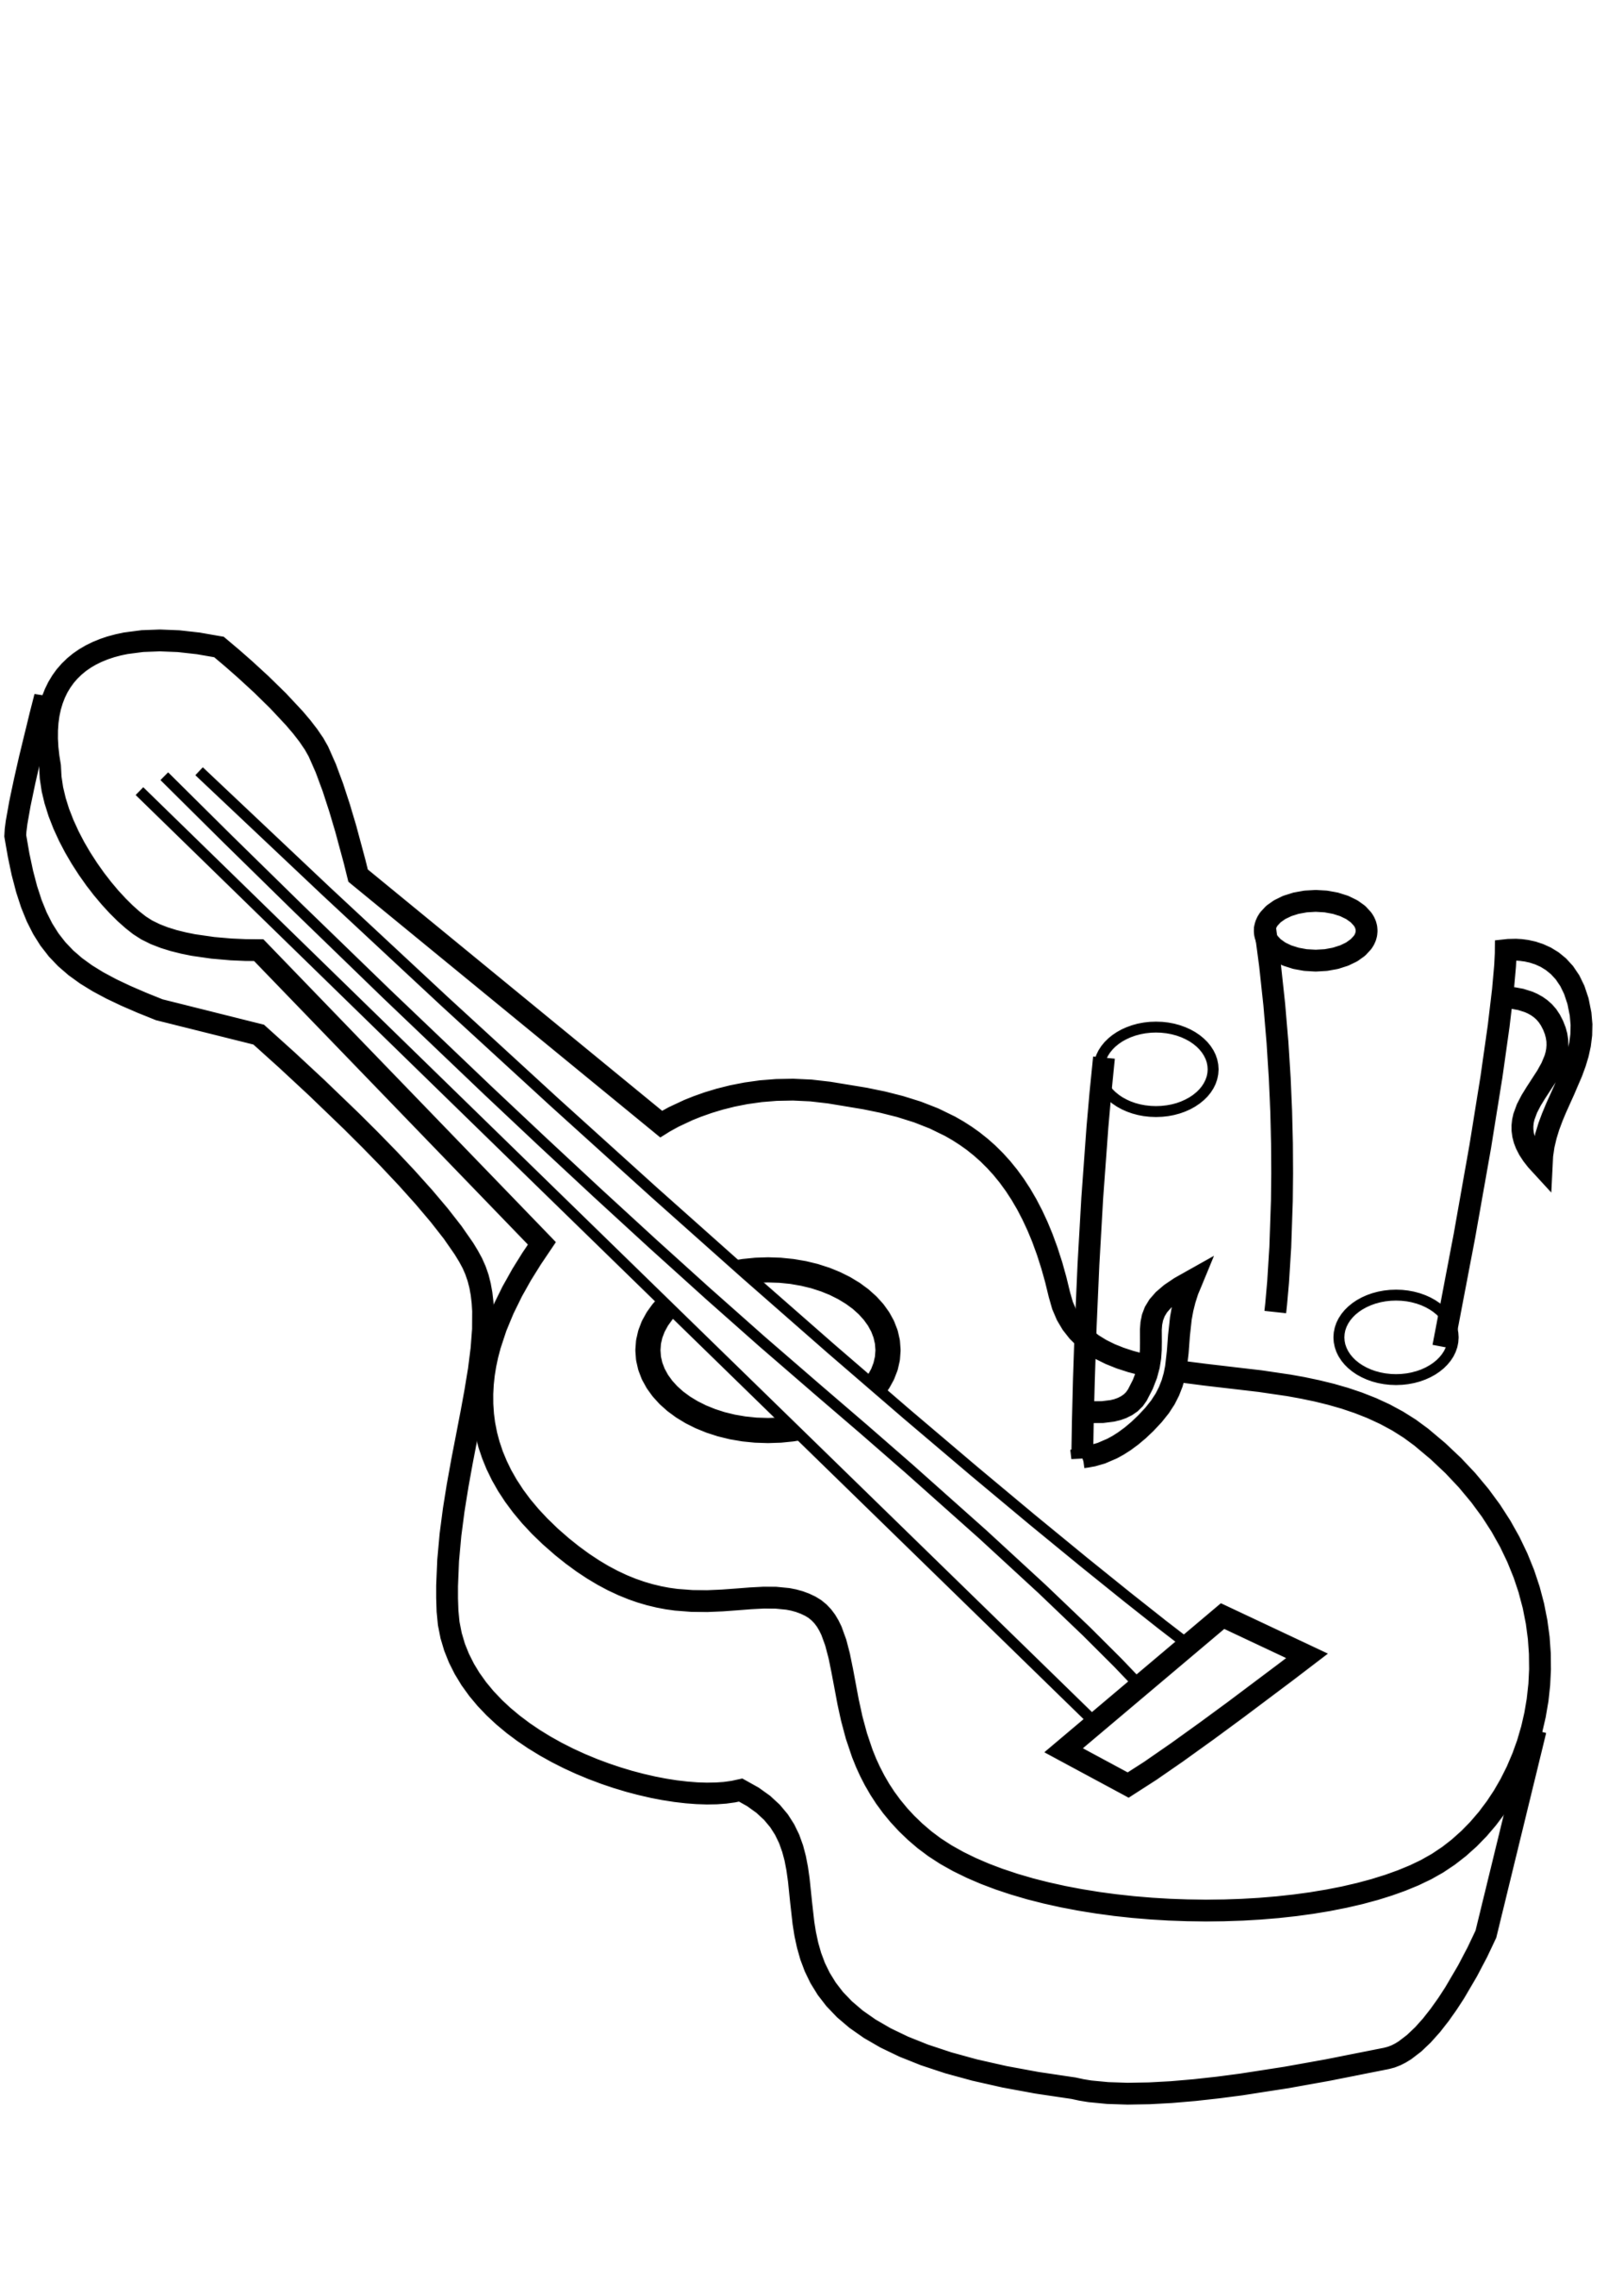 Clipart guitar country guitar. Black and white jokingart